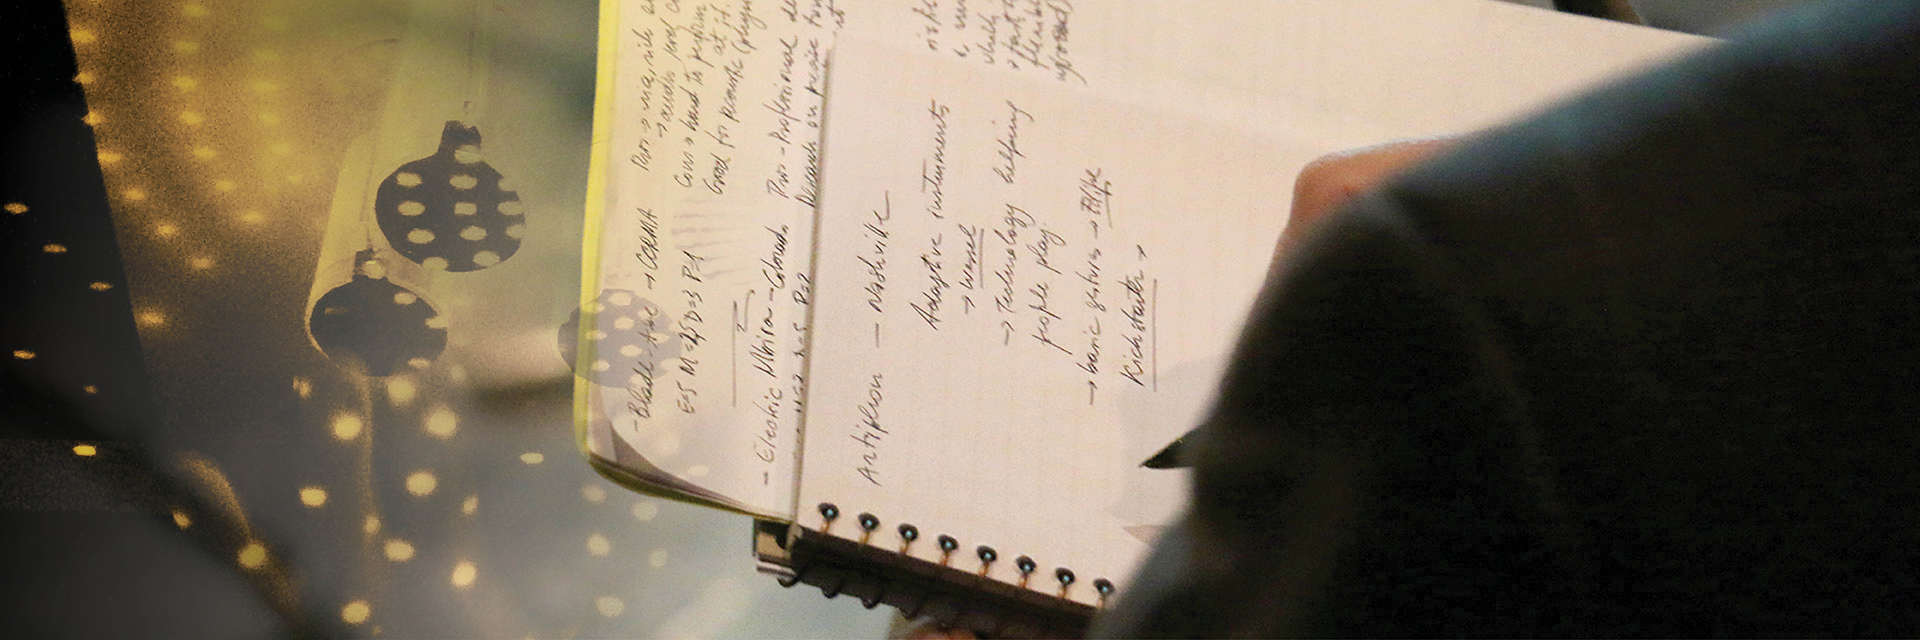 A photo of a Guthman judge's note pad, taken from behind his shoulder as he writes.